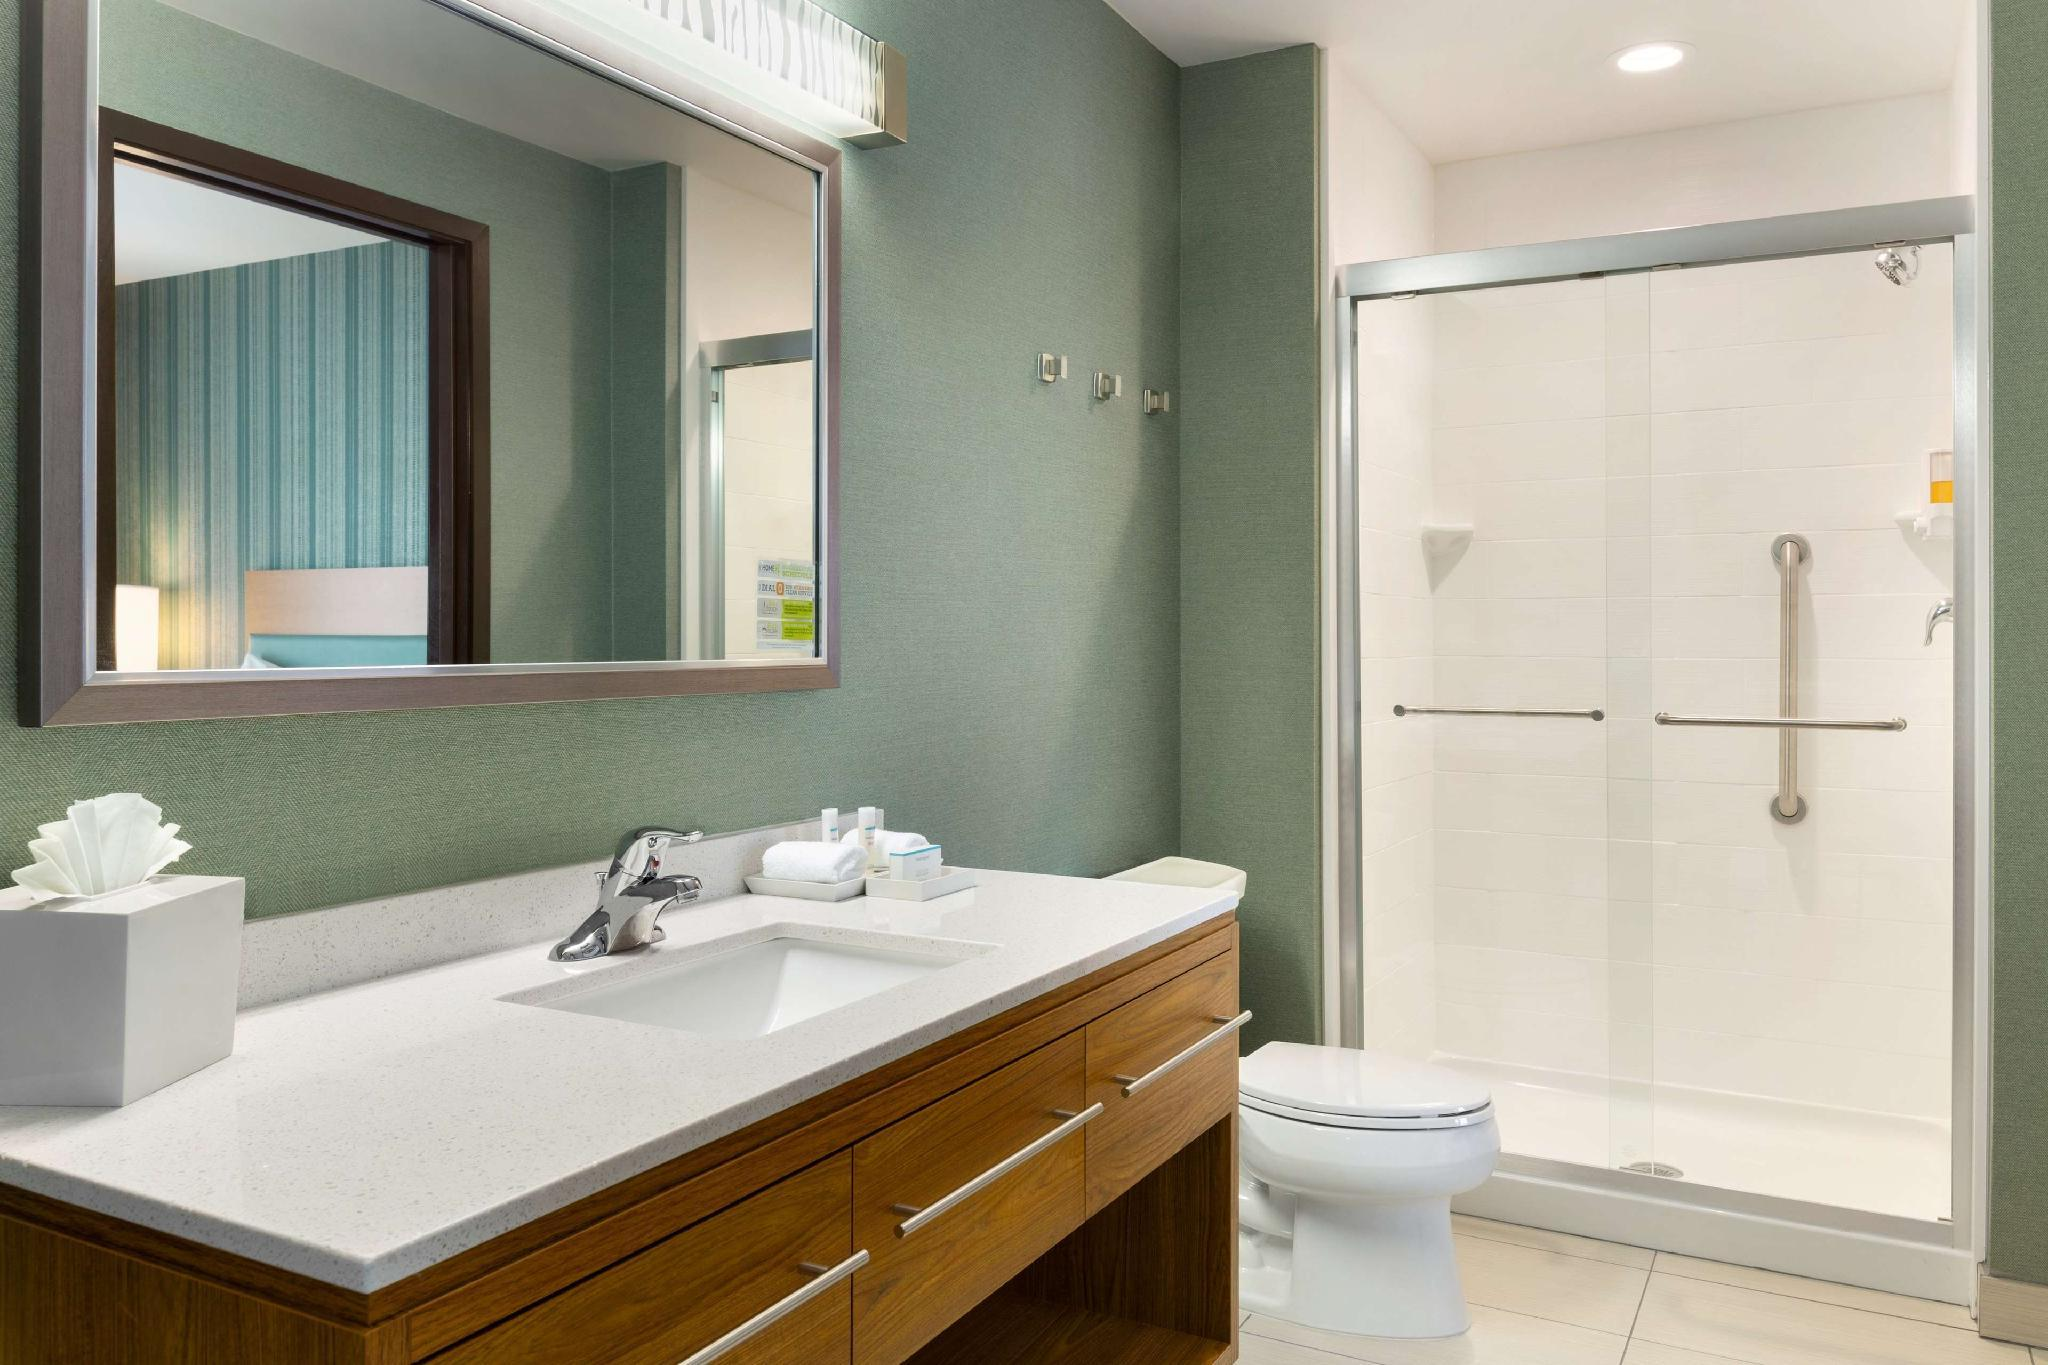 Home2 Suites By Hilton Downingtown Exton Route 30